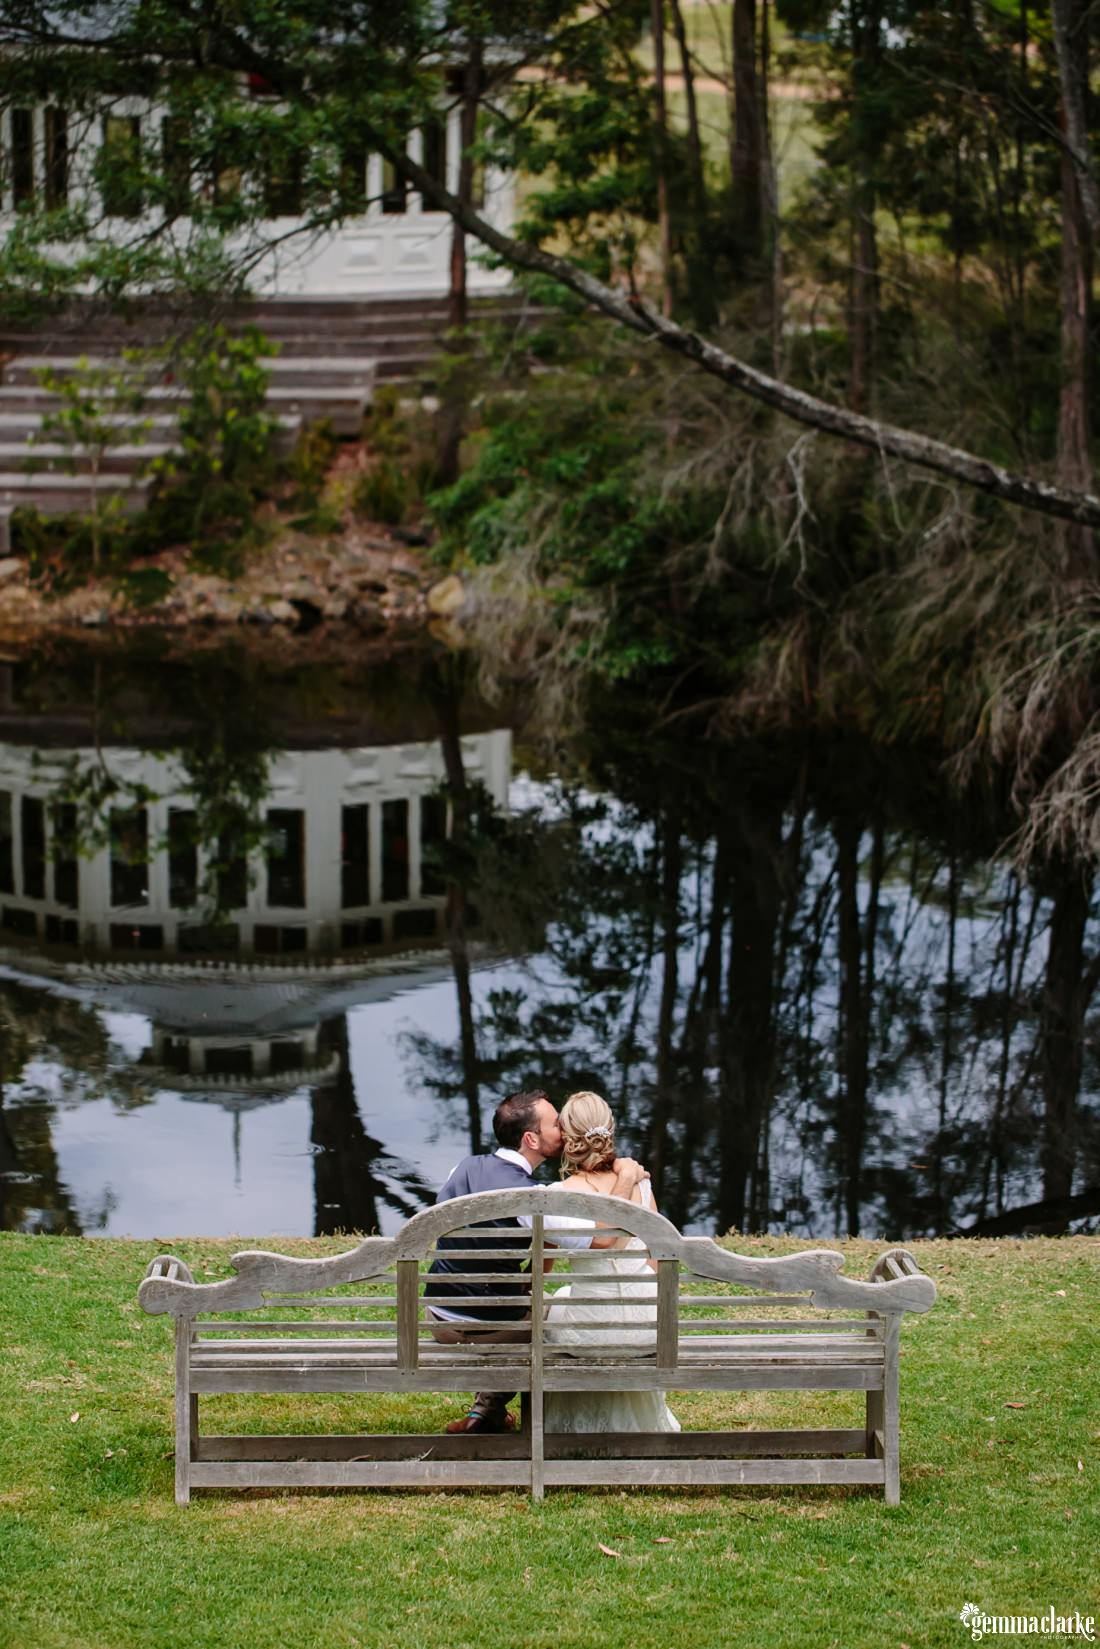 A groom kisses his bride on the cheek as they sit on a wooden bench seat near a small lake